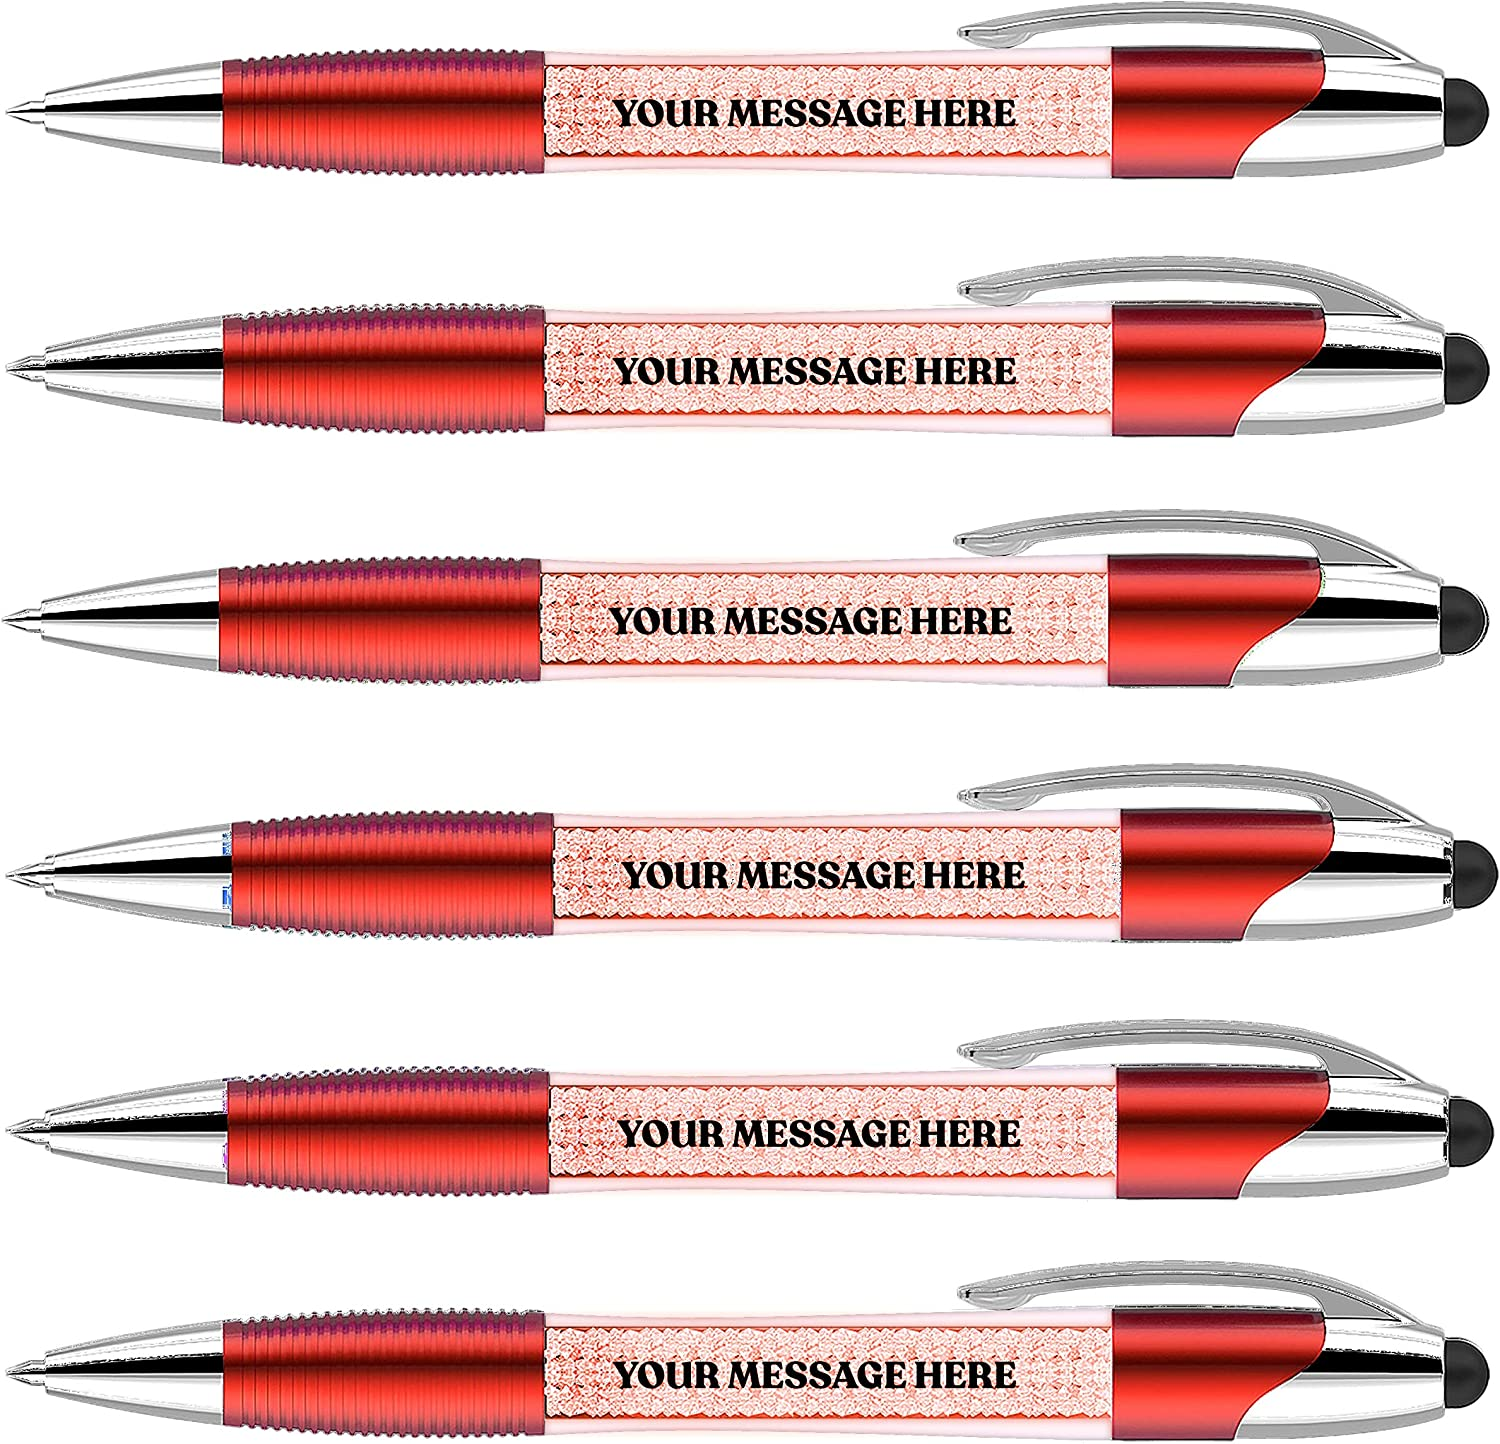 Personalized Pens+Stylus-100 Pack Bulk-Pen up A surprise price is realized Personali a Lights National uniform free shipping